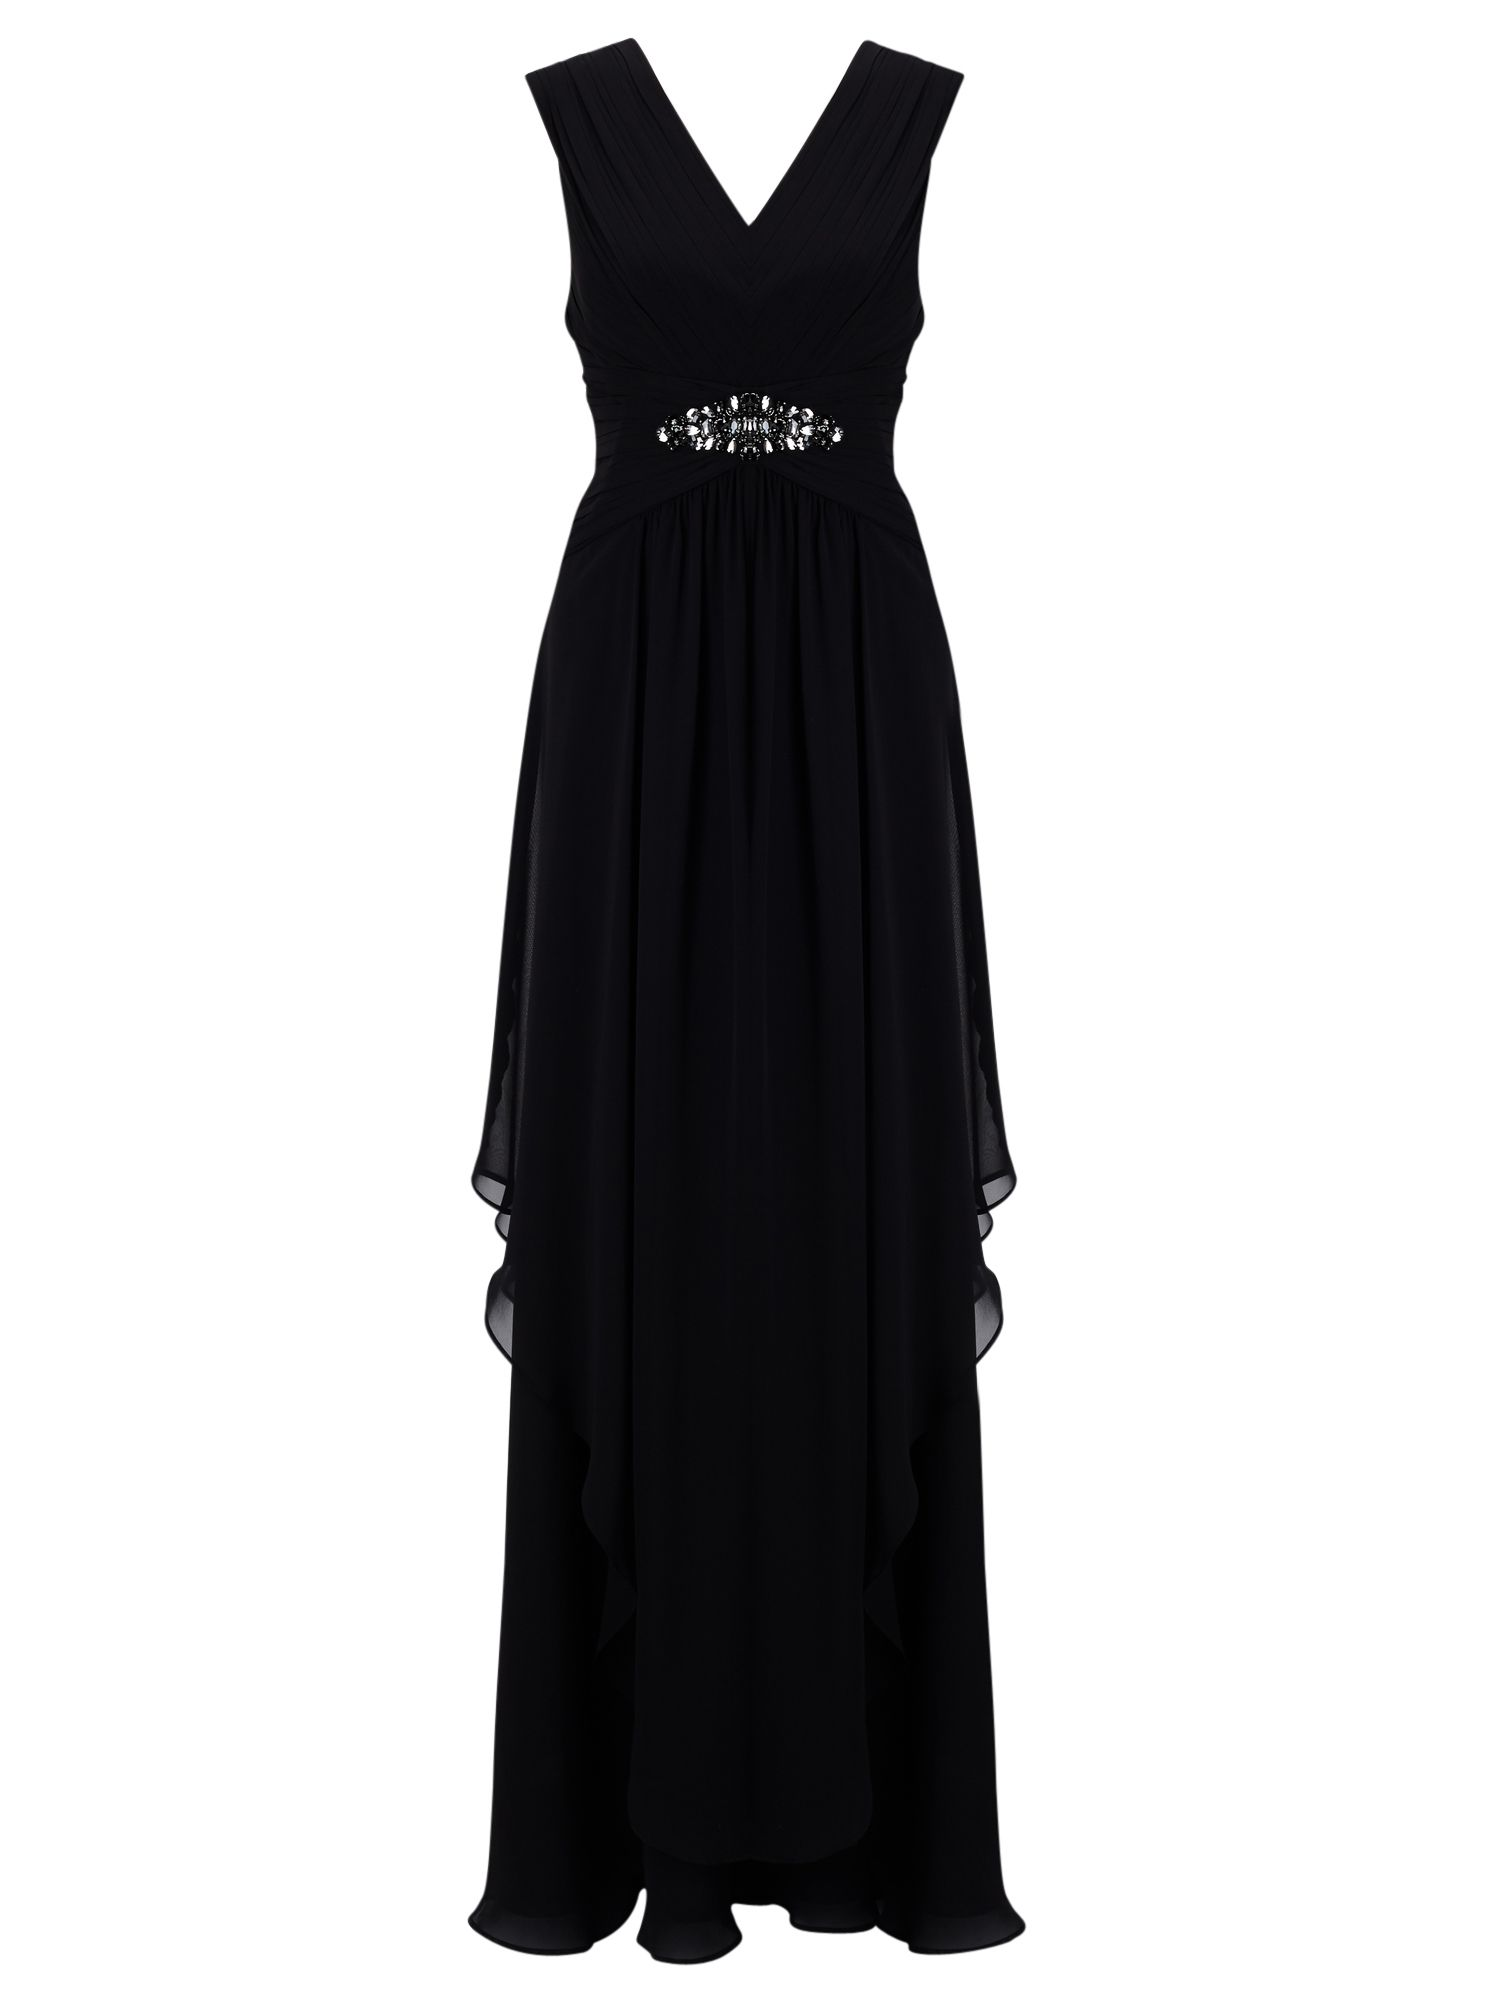 Jacques Vert Maxi Hanky Hem Dress Black £179.00 AT vintagedancer.com